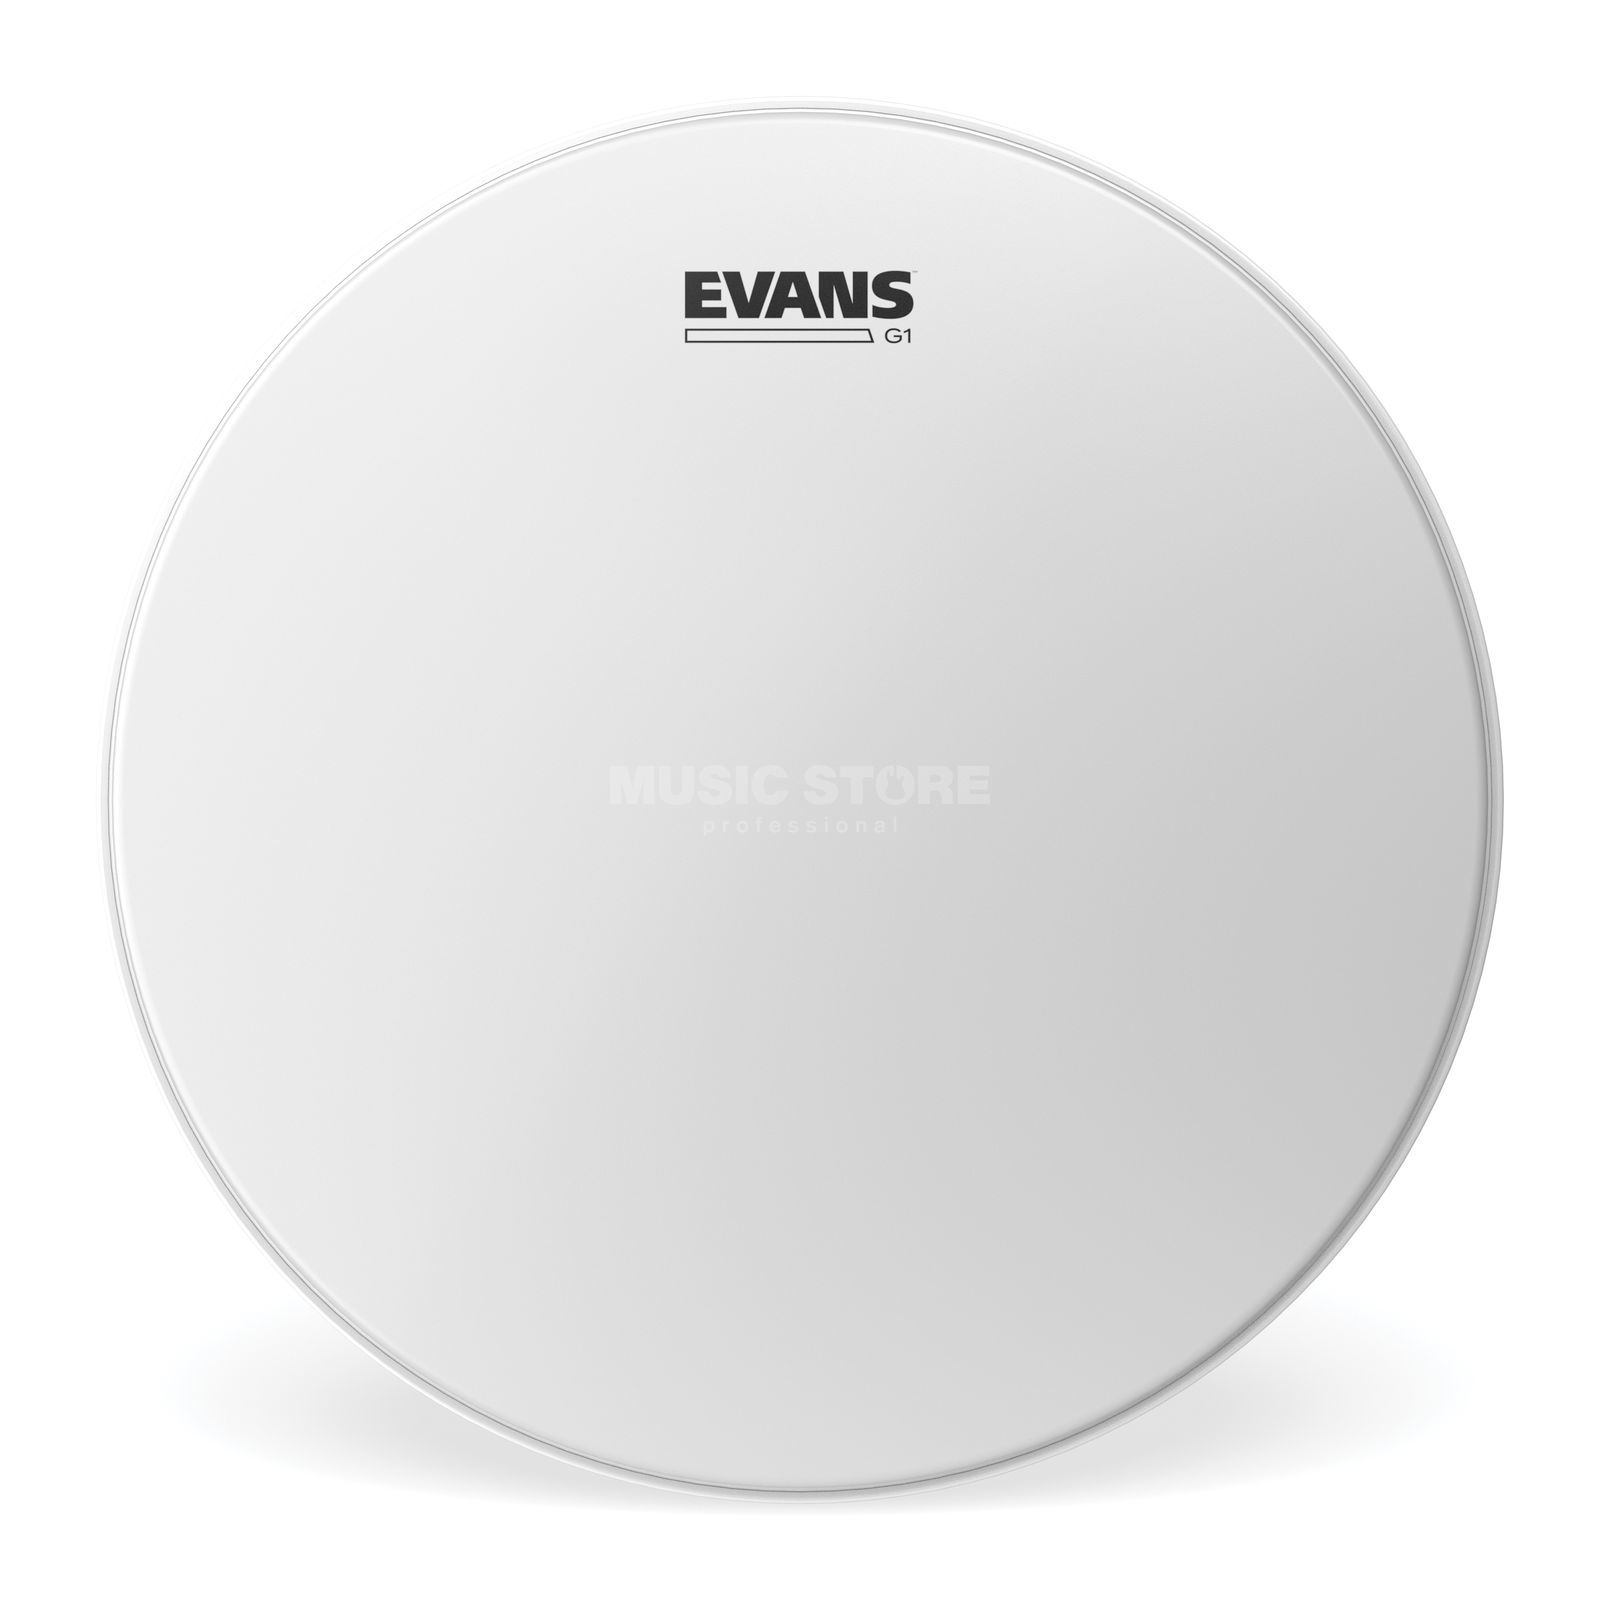 "Evans G1 Coated 15"", B15G1, Tom Batter Изображение товара"